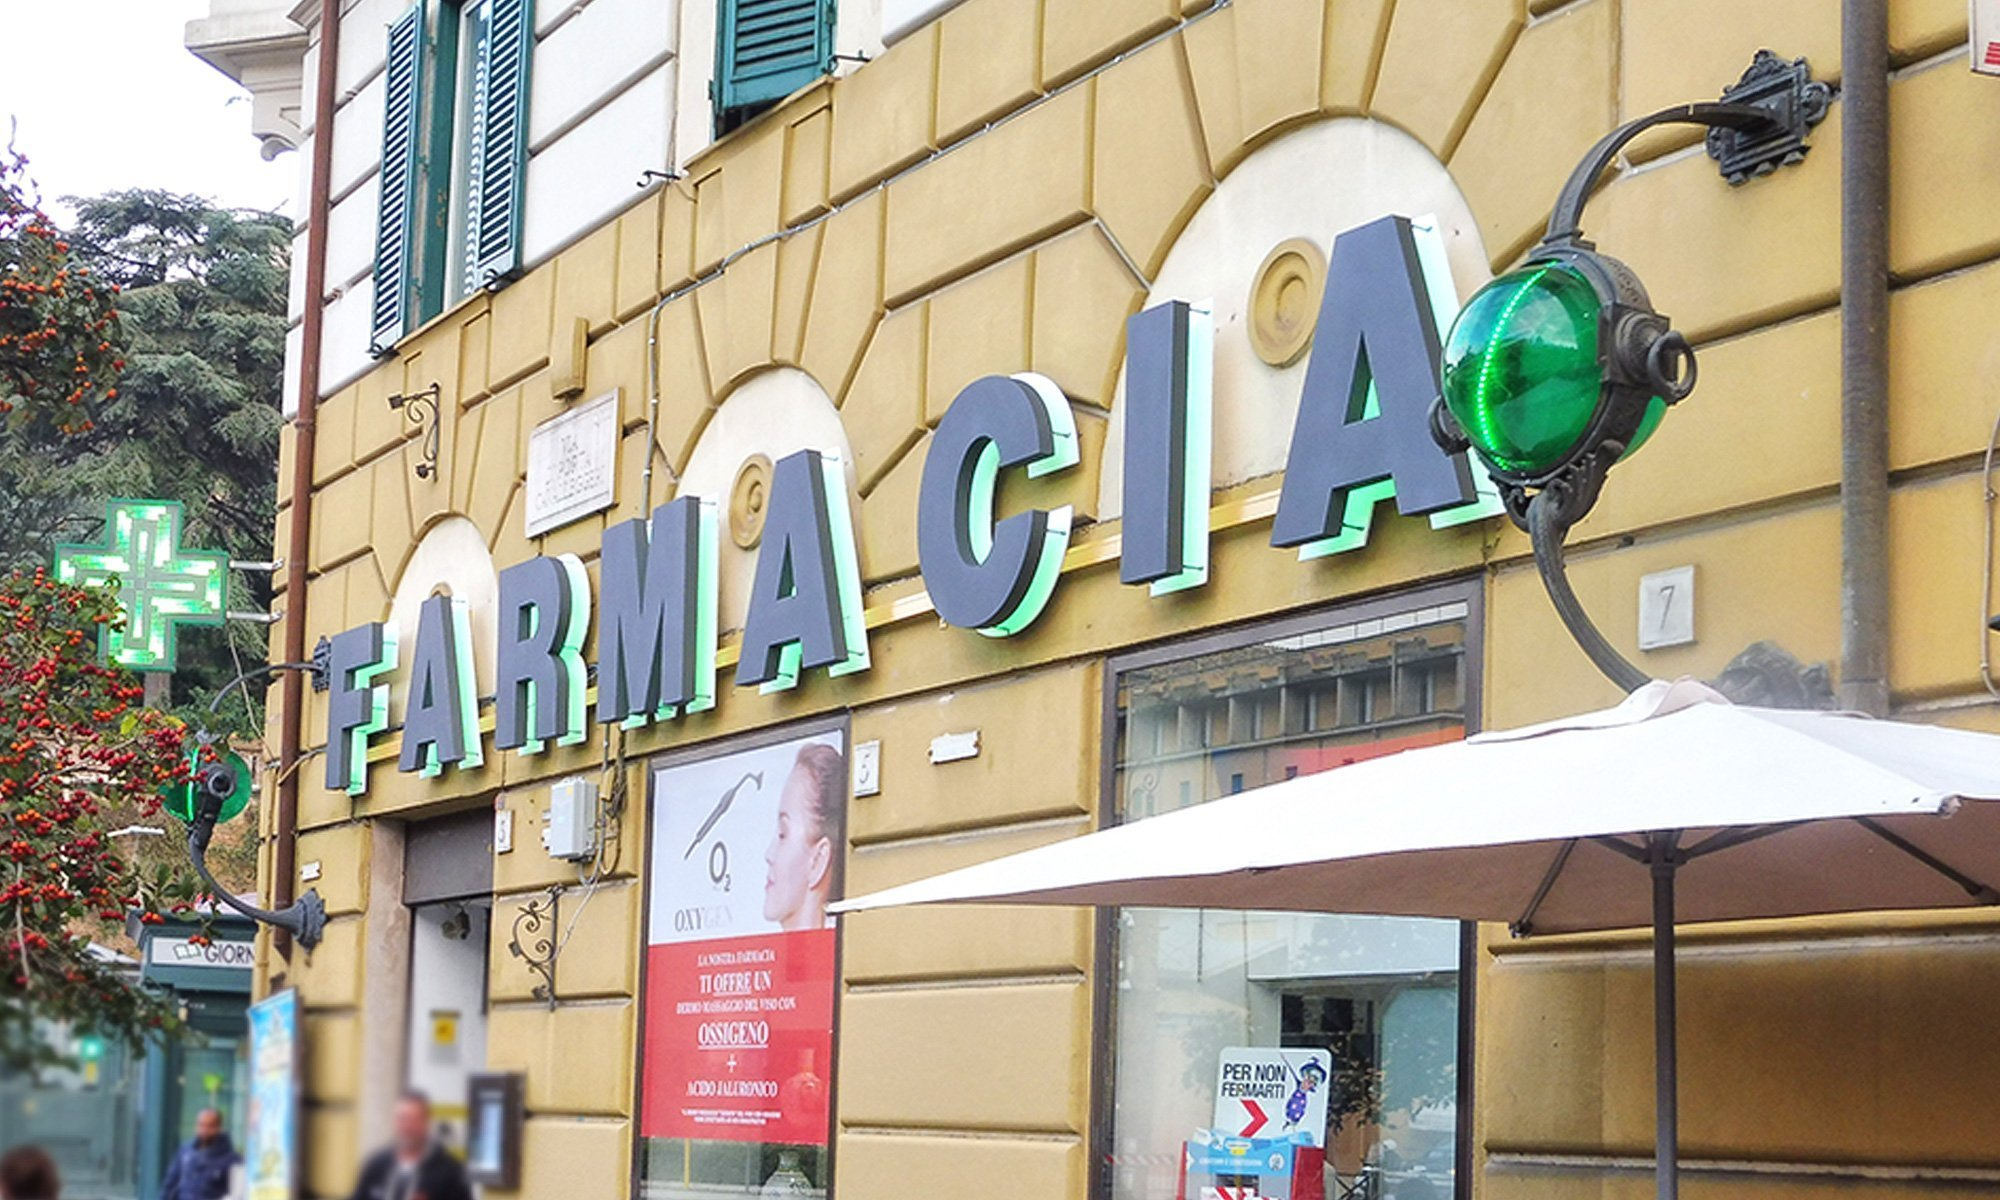 Insegna luminosa LED per farmacia